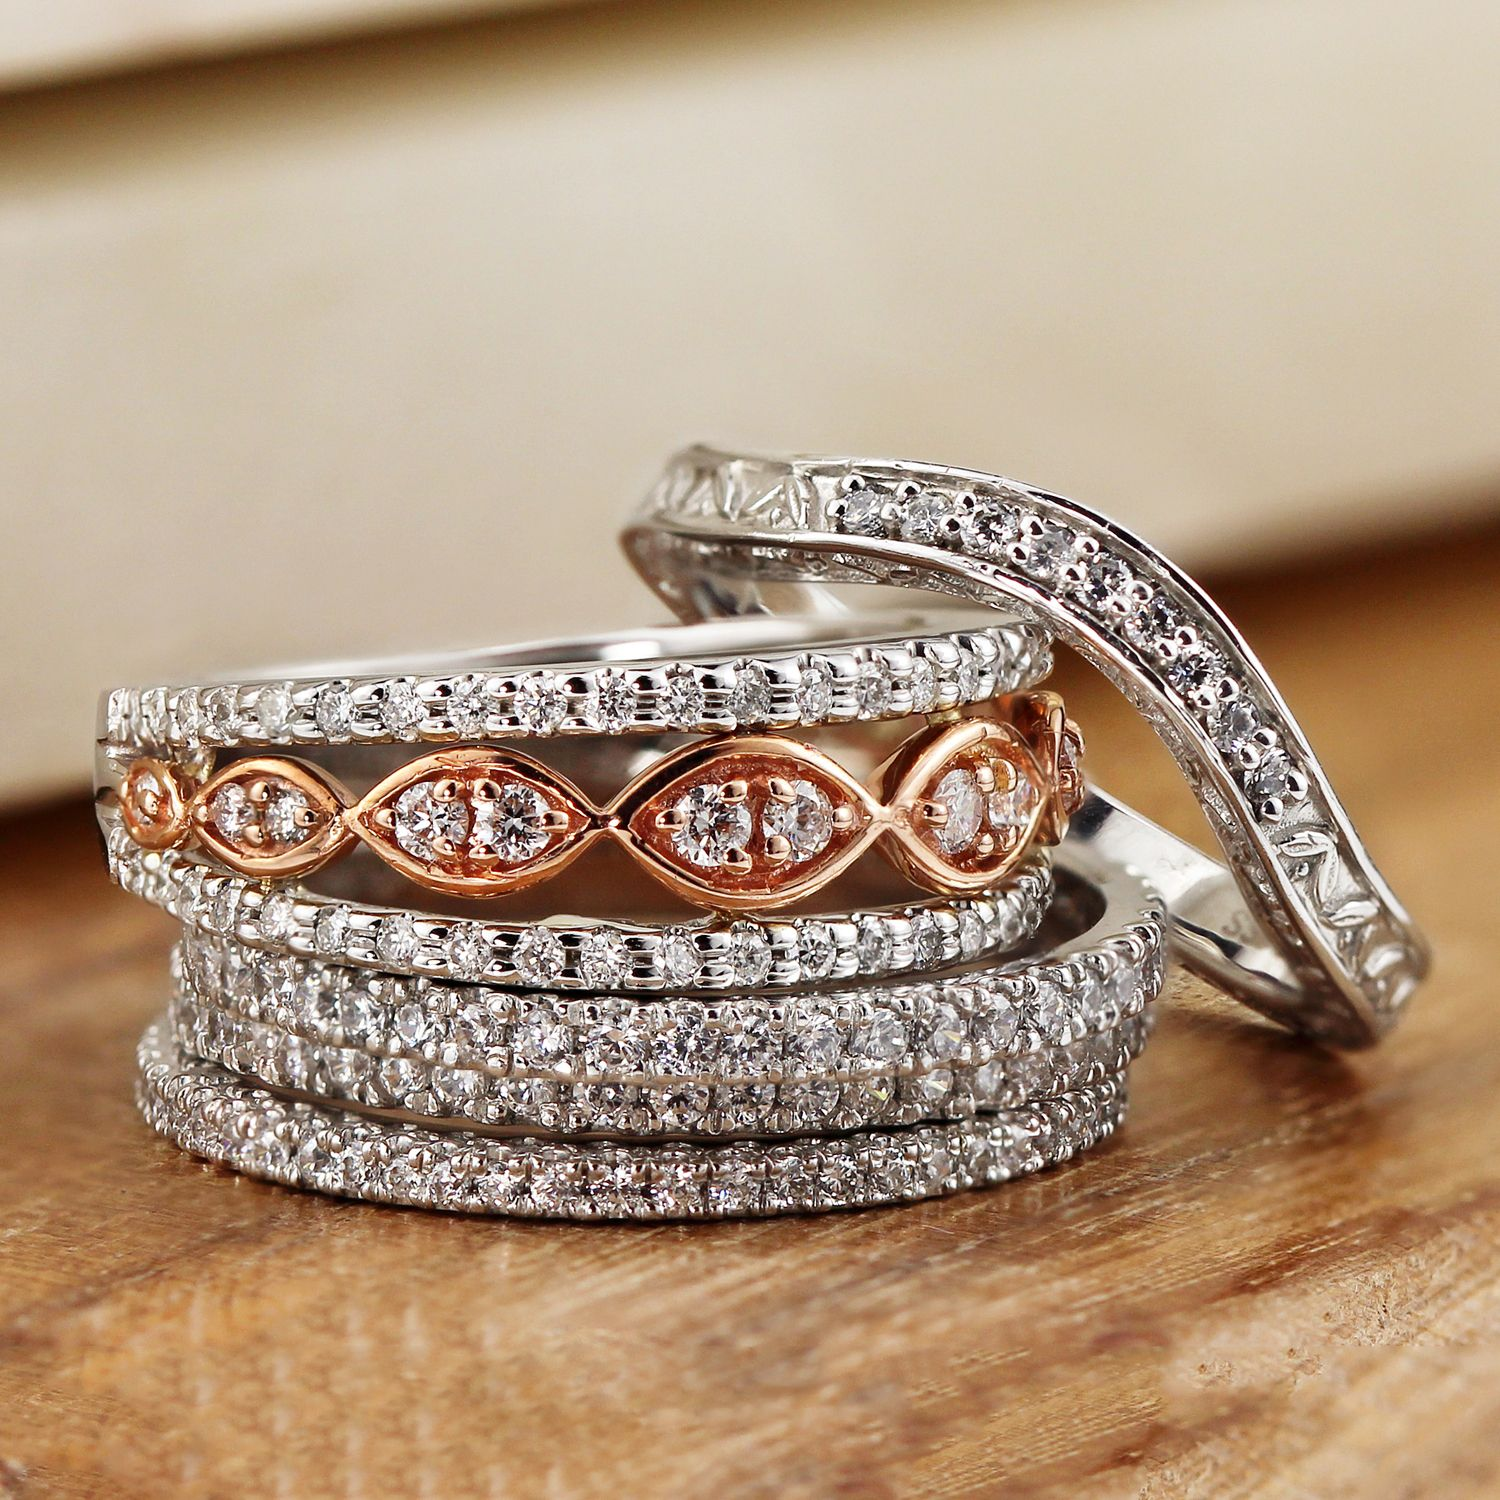 How to Select a Unique Promise Ring